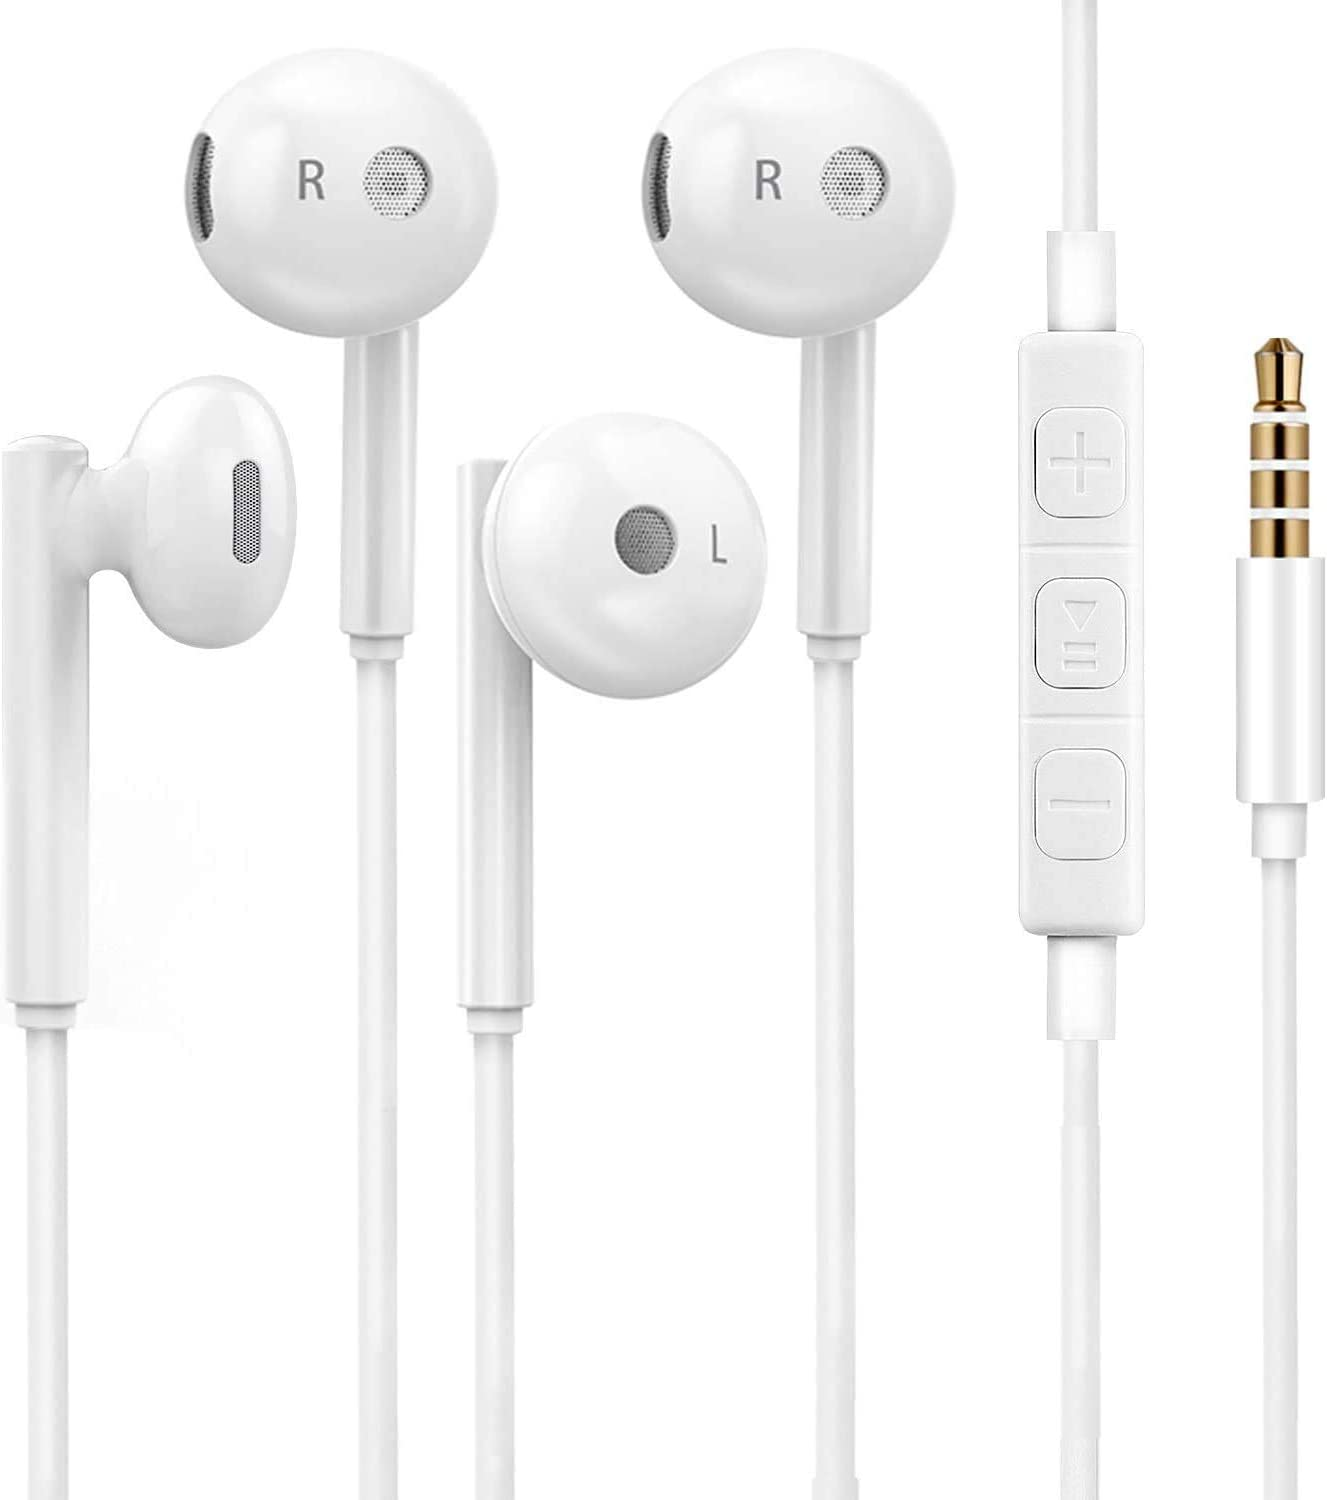 Heren 3.5mm in-Ear Wired Noise Cancellation Earbuds/Earphones/Headphones with Remote & Micphone Compatible with iPhone 6 Plus 5 4/Samsung/Android/MP3(2 Pack)